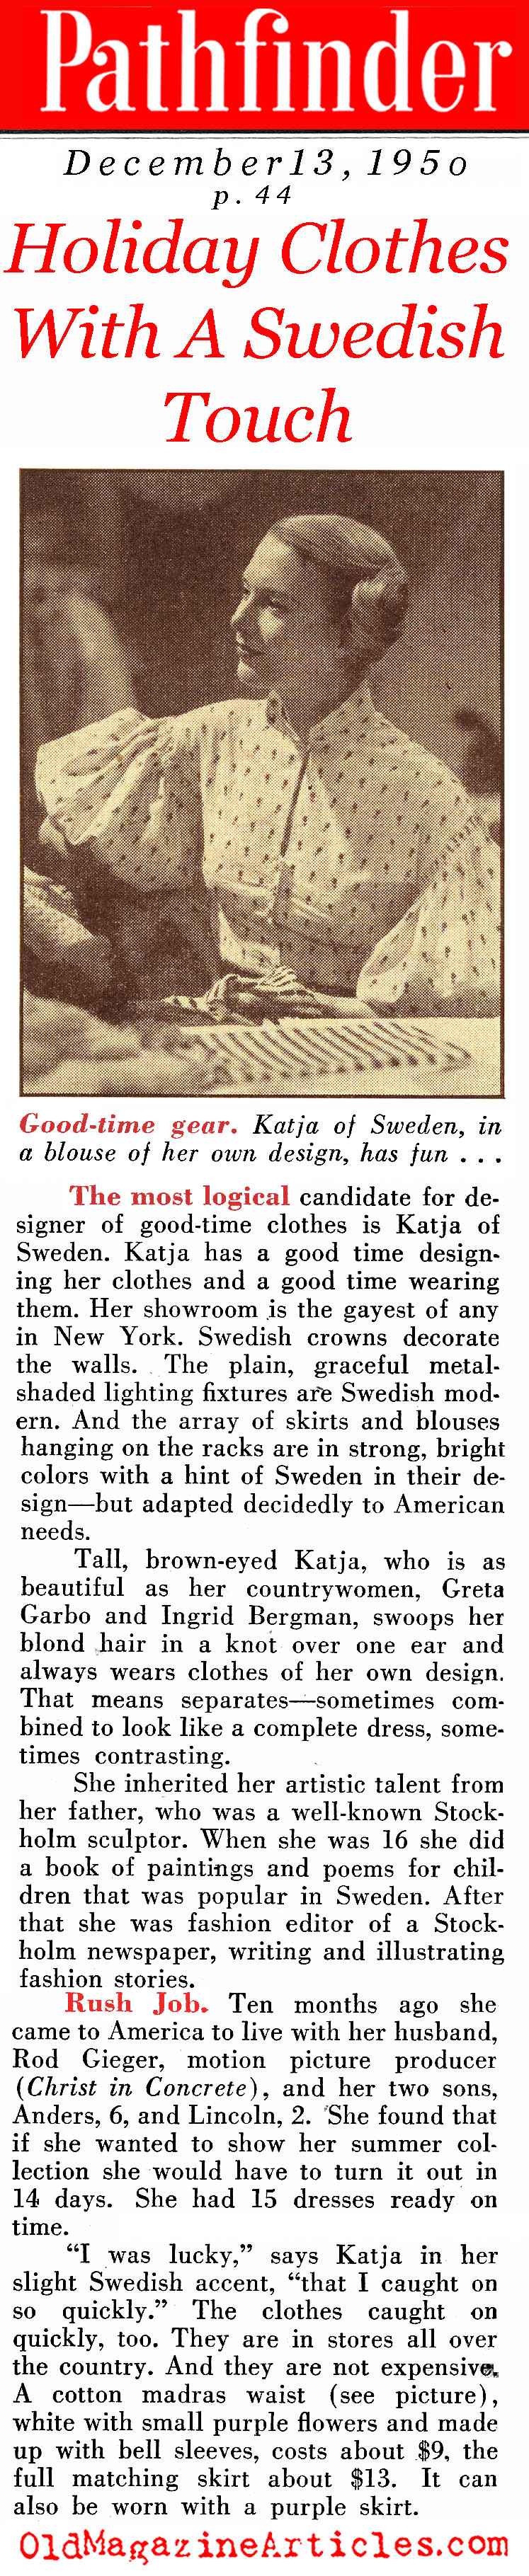 The Swedish Touch (Pathfinder Magazine, 1950)